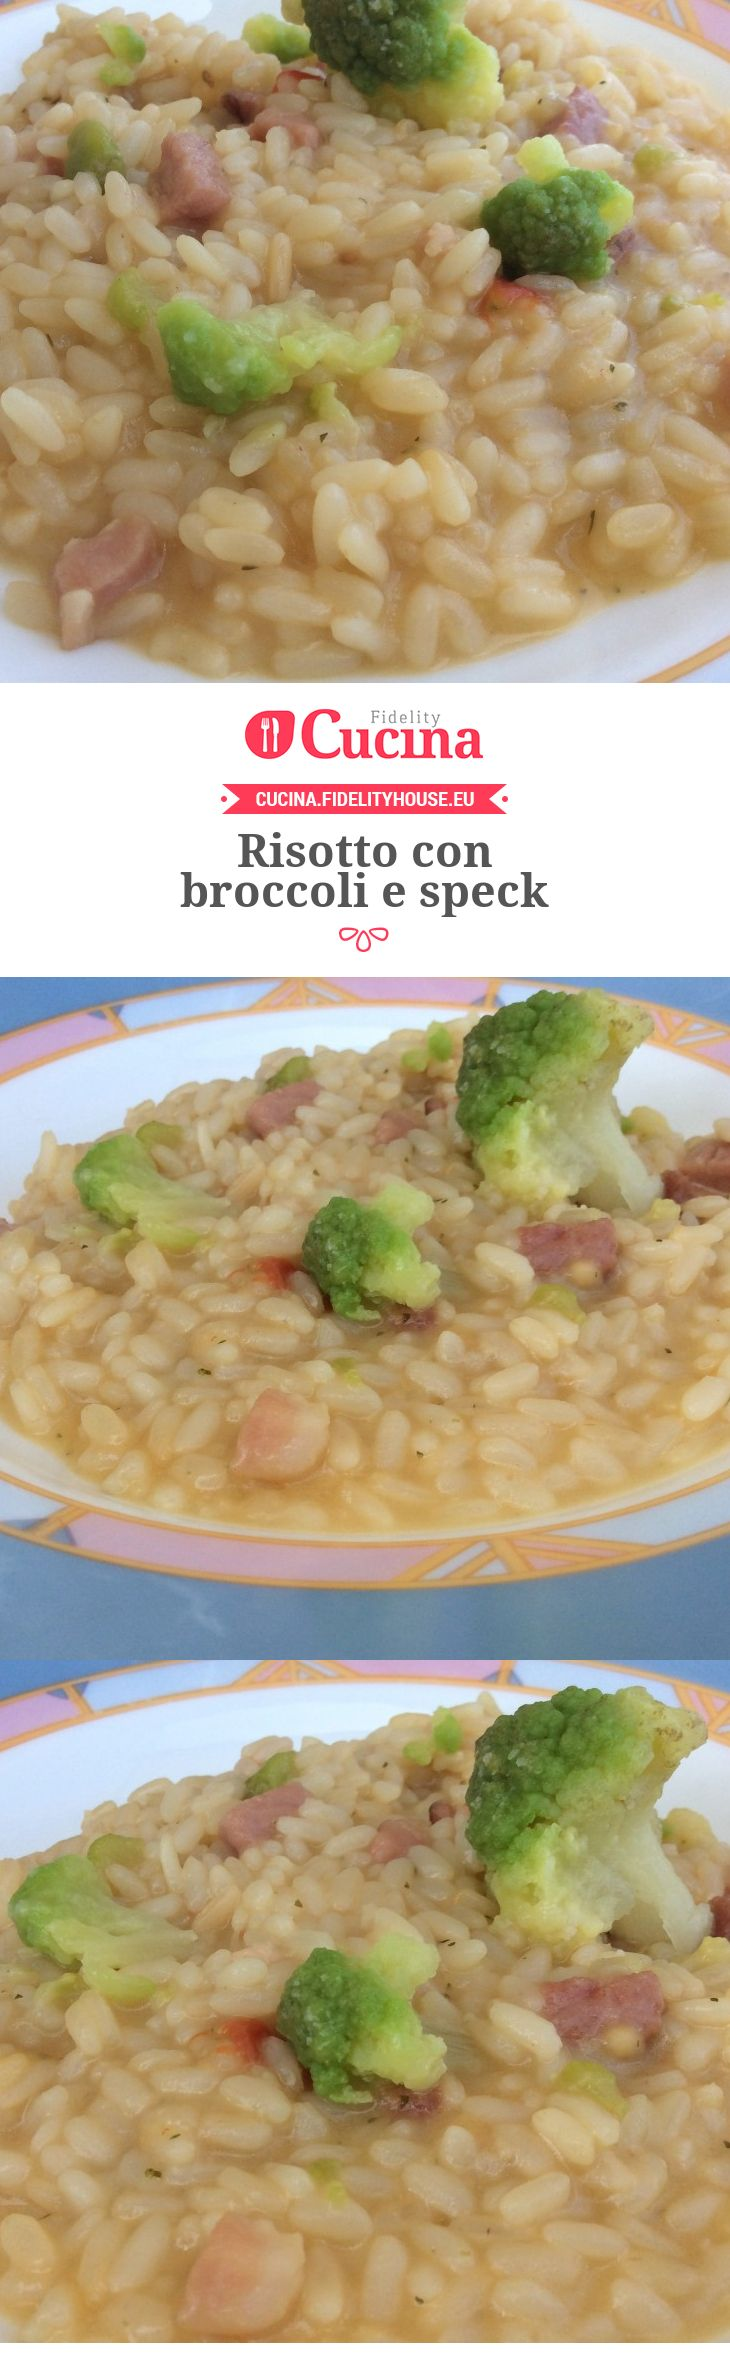 Risotto con broccoli e speck